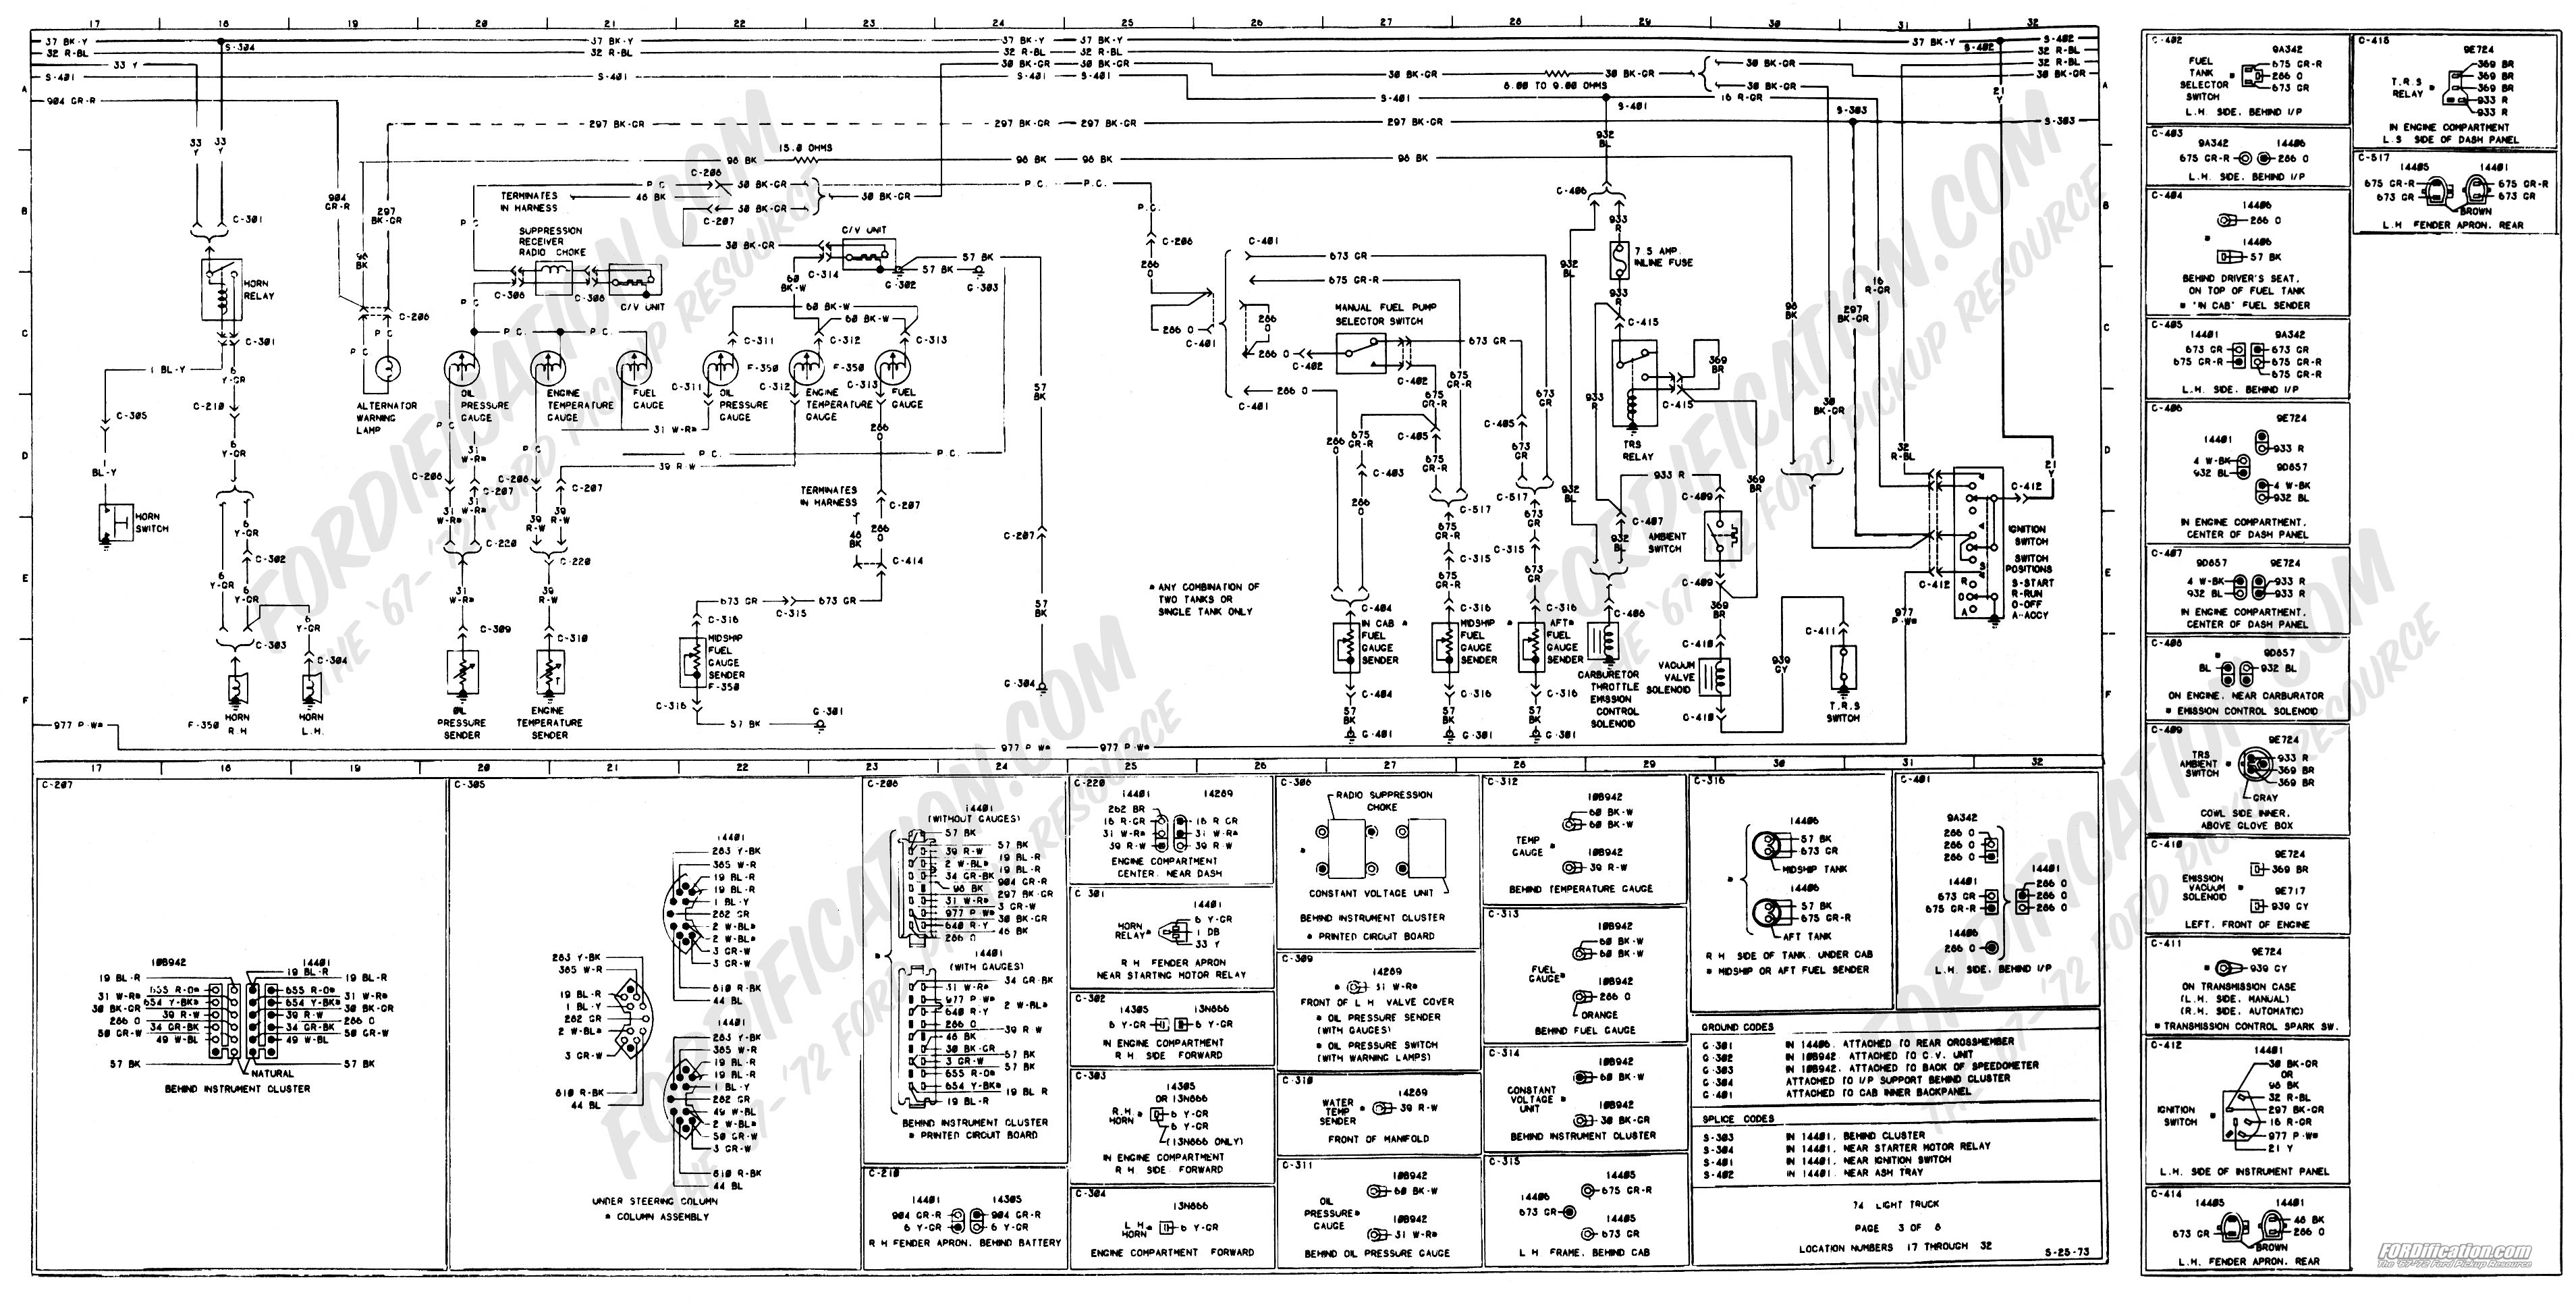 1978 ford f 150 engine wiring diagram 2010 f150    wiring    schematic free    wiring       diagram     2010 f150    wiring    schematic free    wiring       diagram